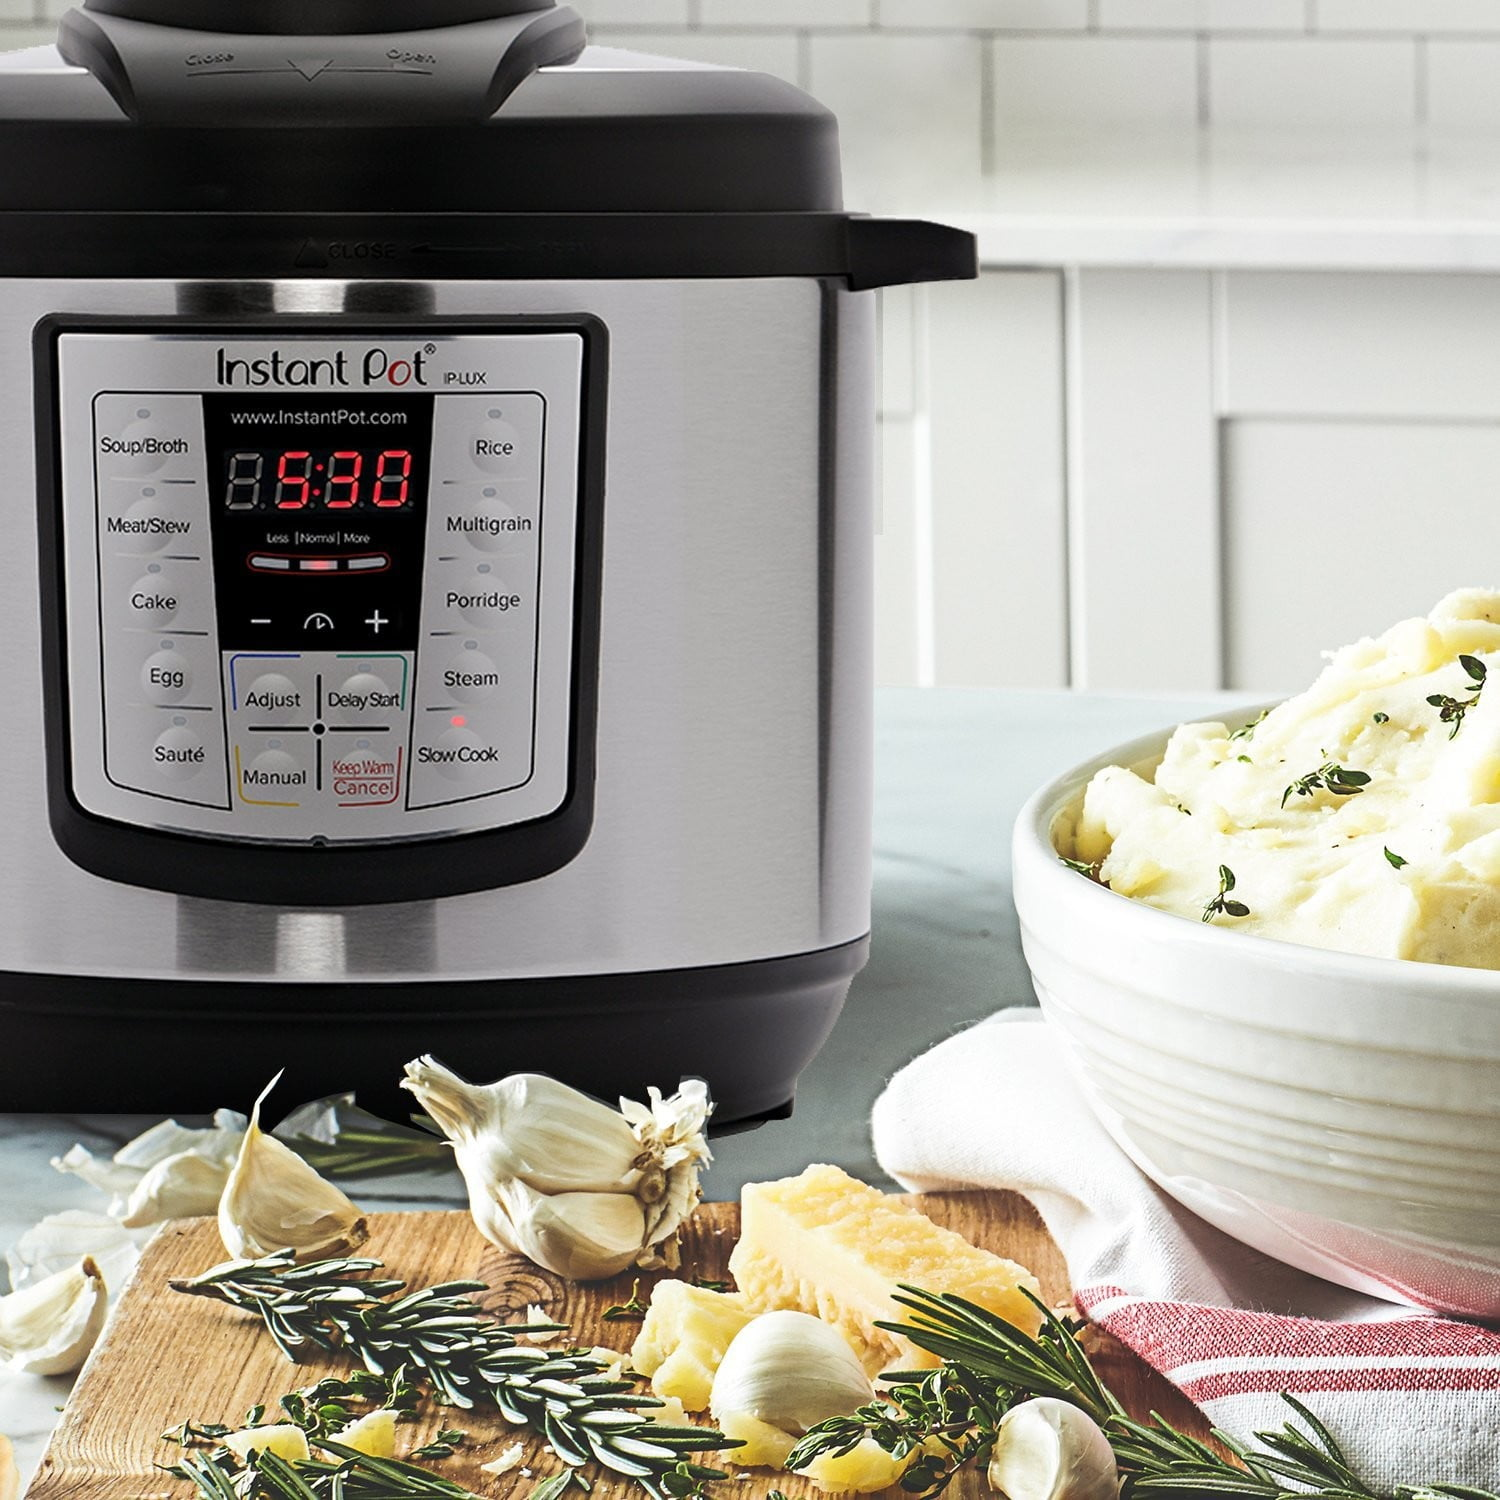 You can get the Instant Pot for under $60 on Black Friday